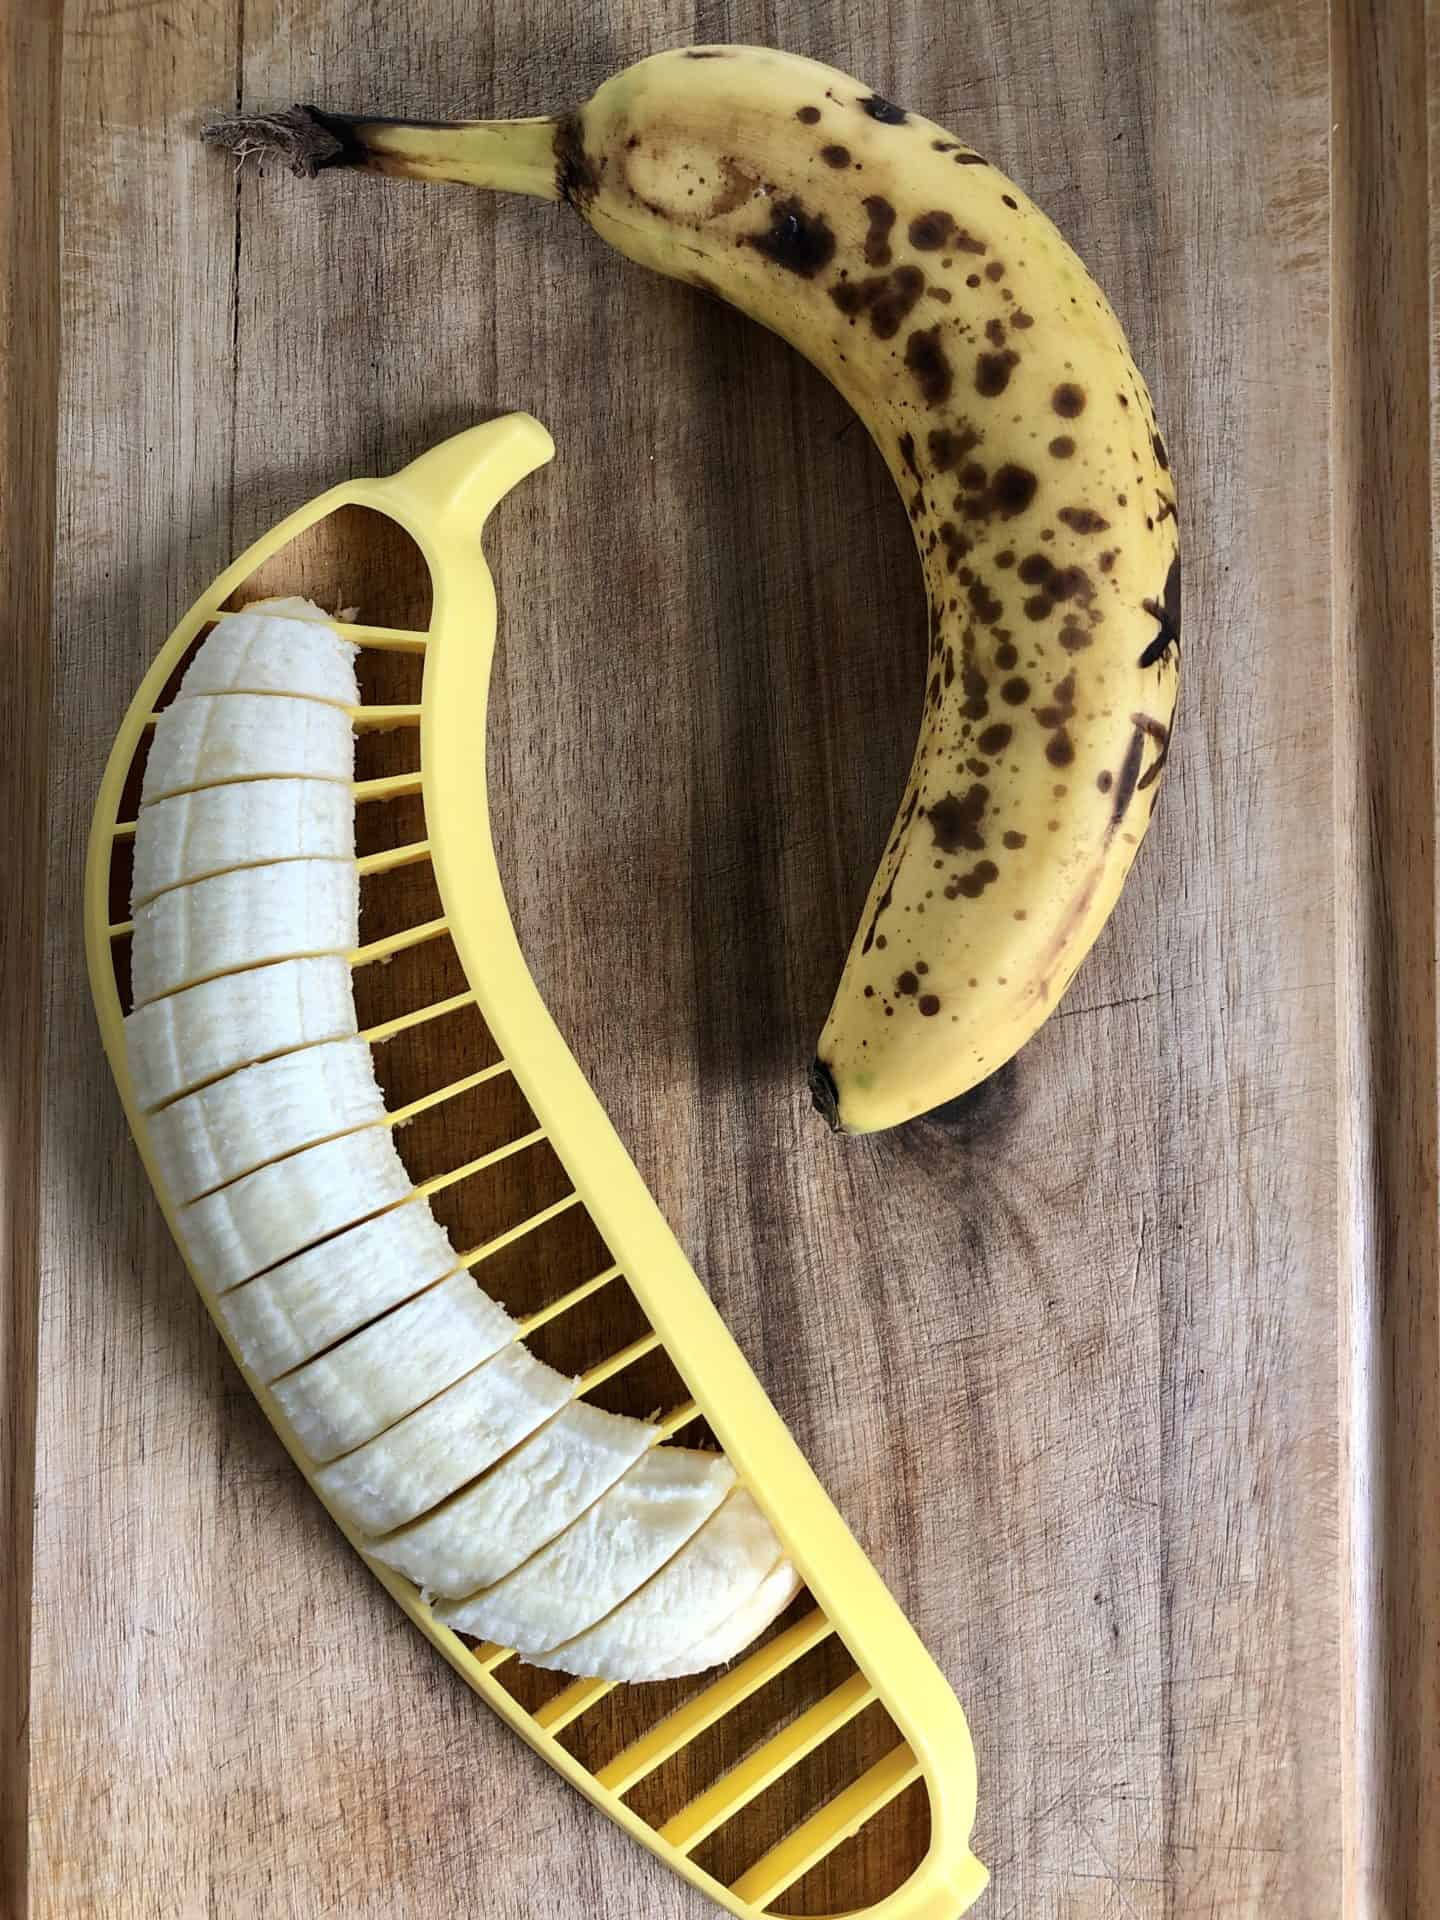 Bananas being sliced with a banana slicer